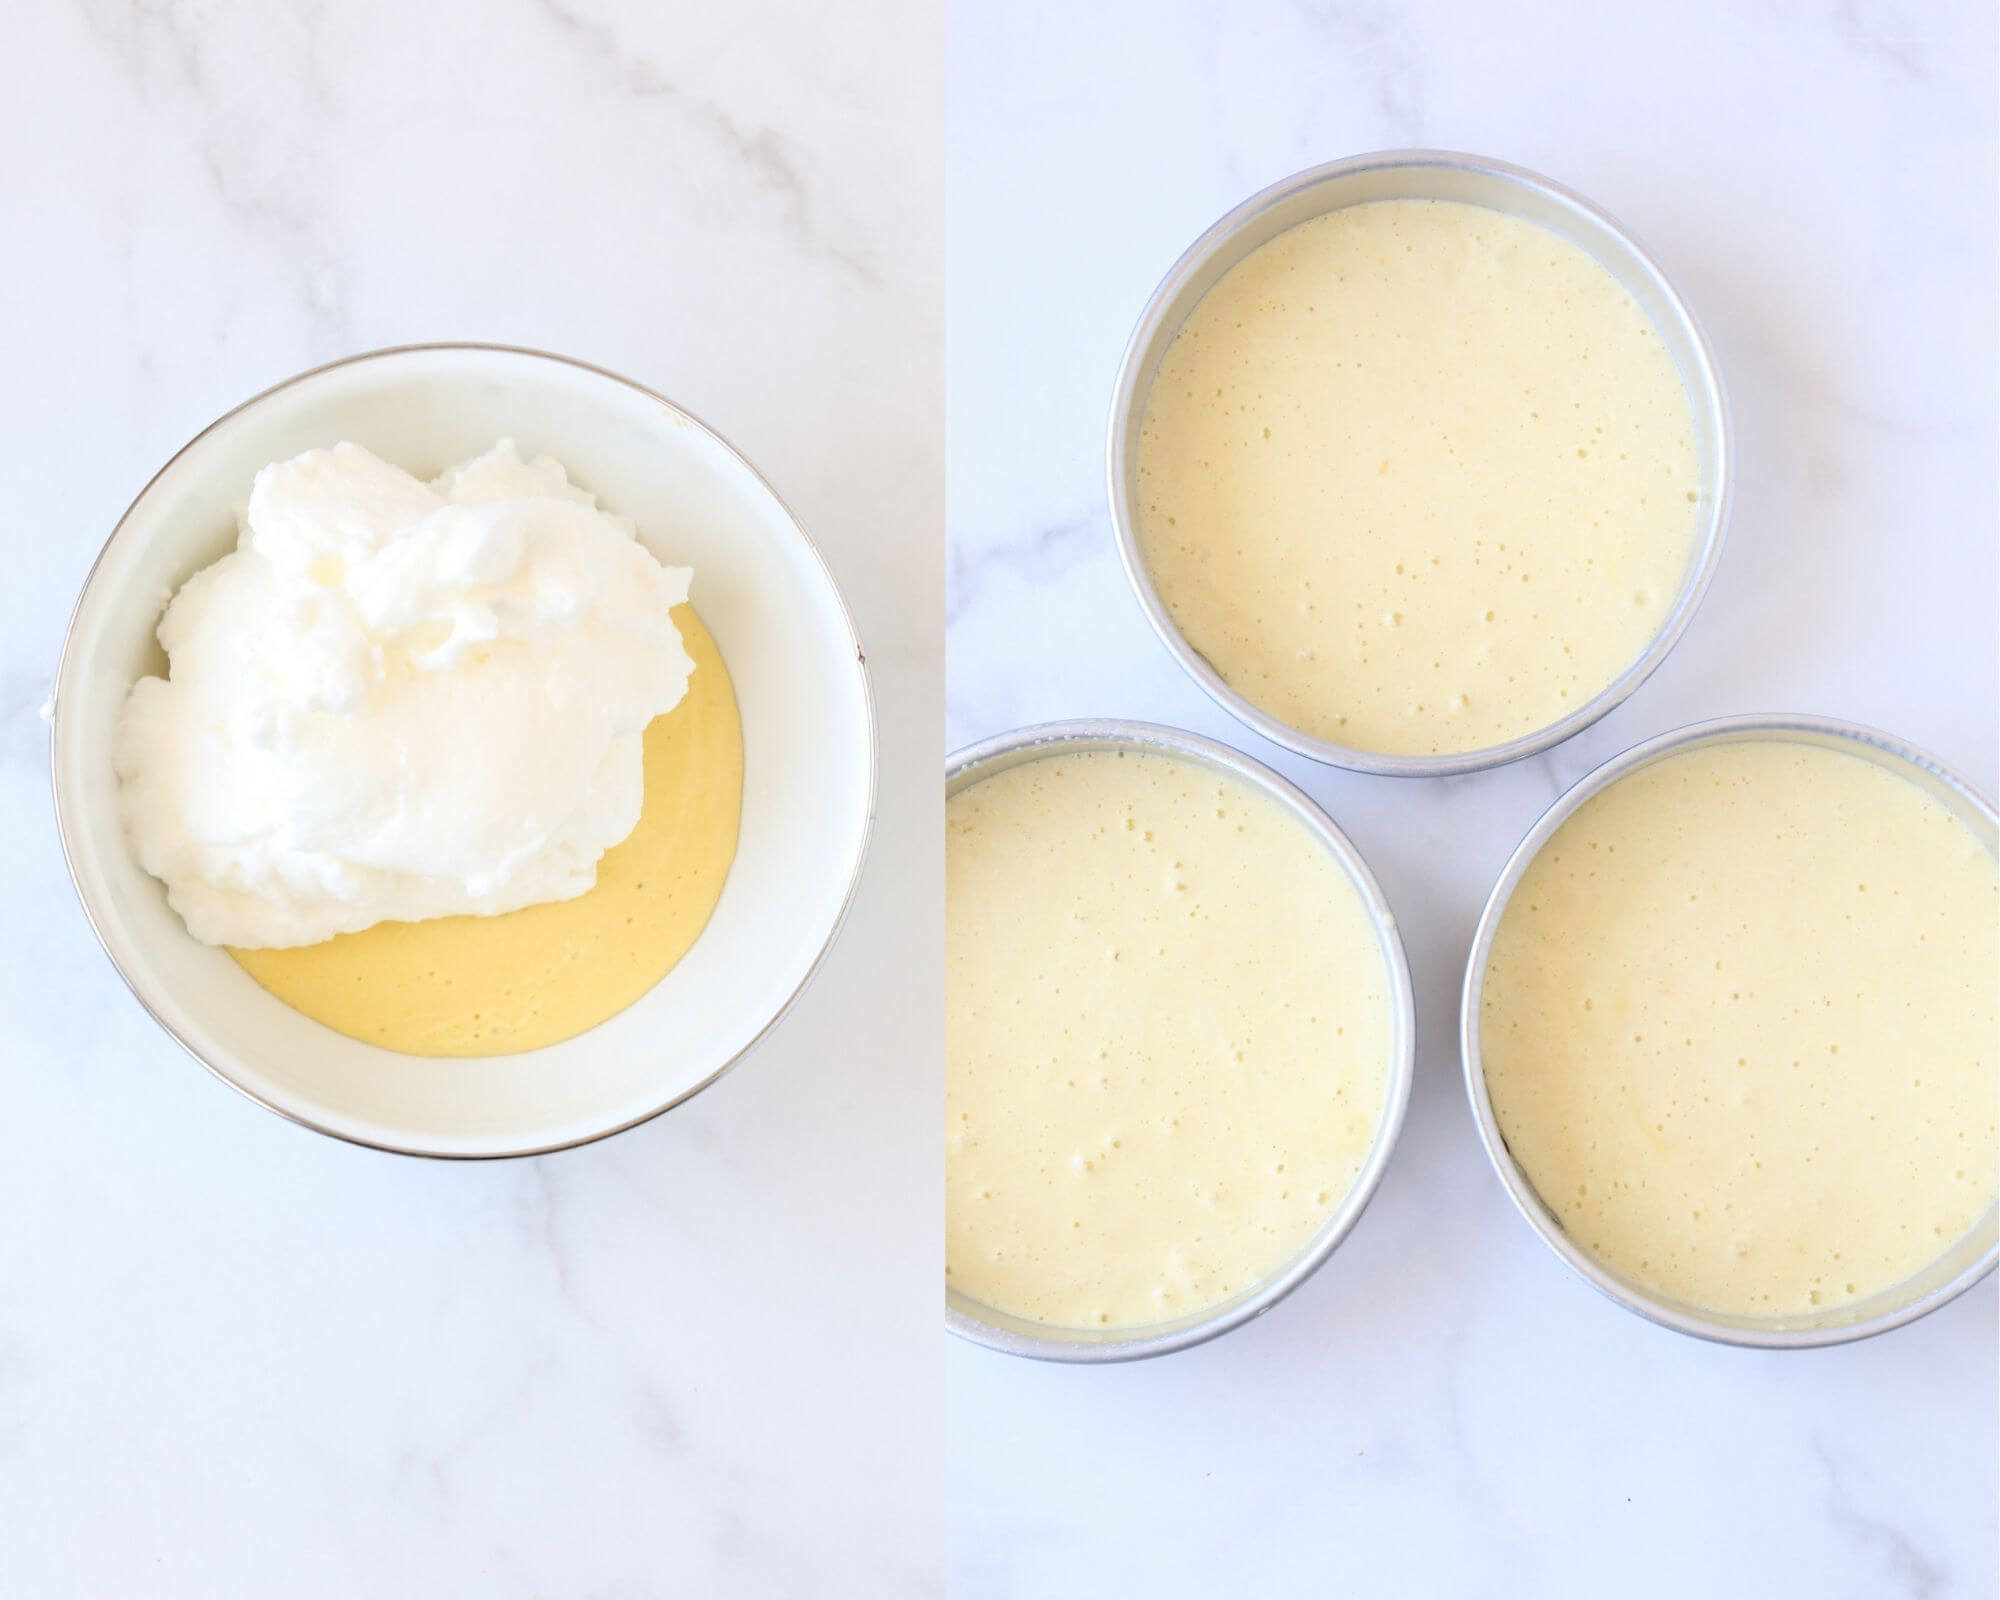 a bowl of egg yolks and egg white to prepare for a cake next to three cake pans filled with cake batter.